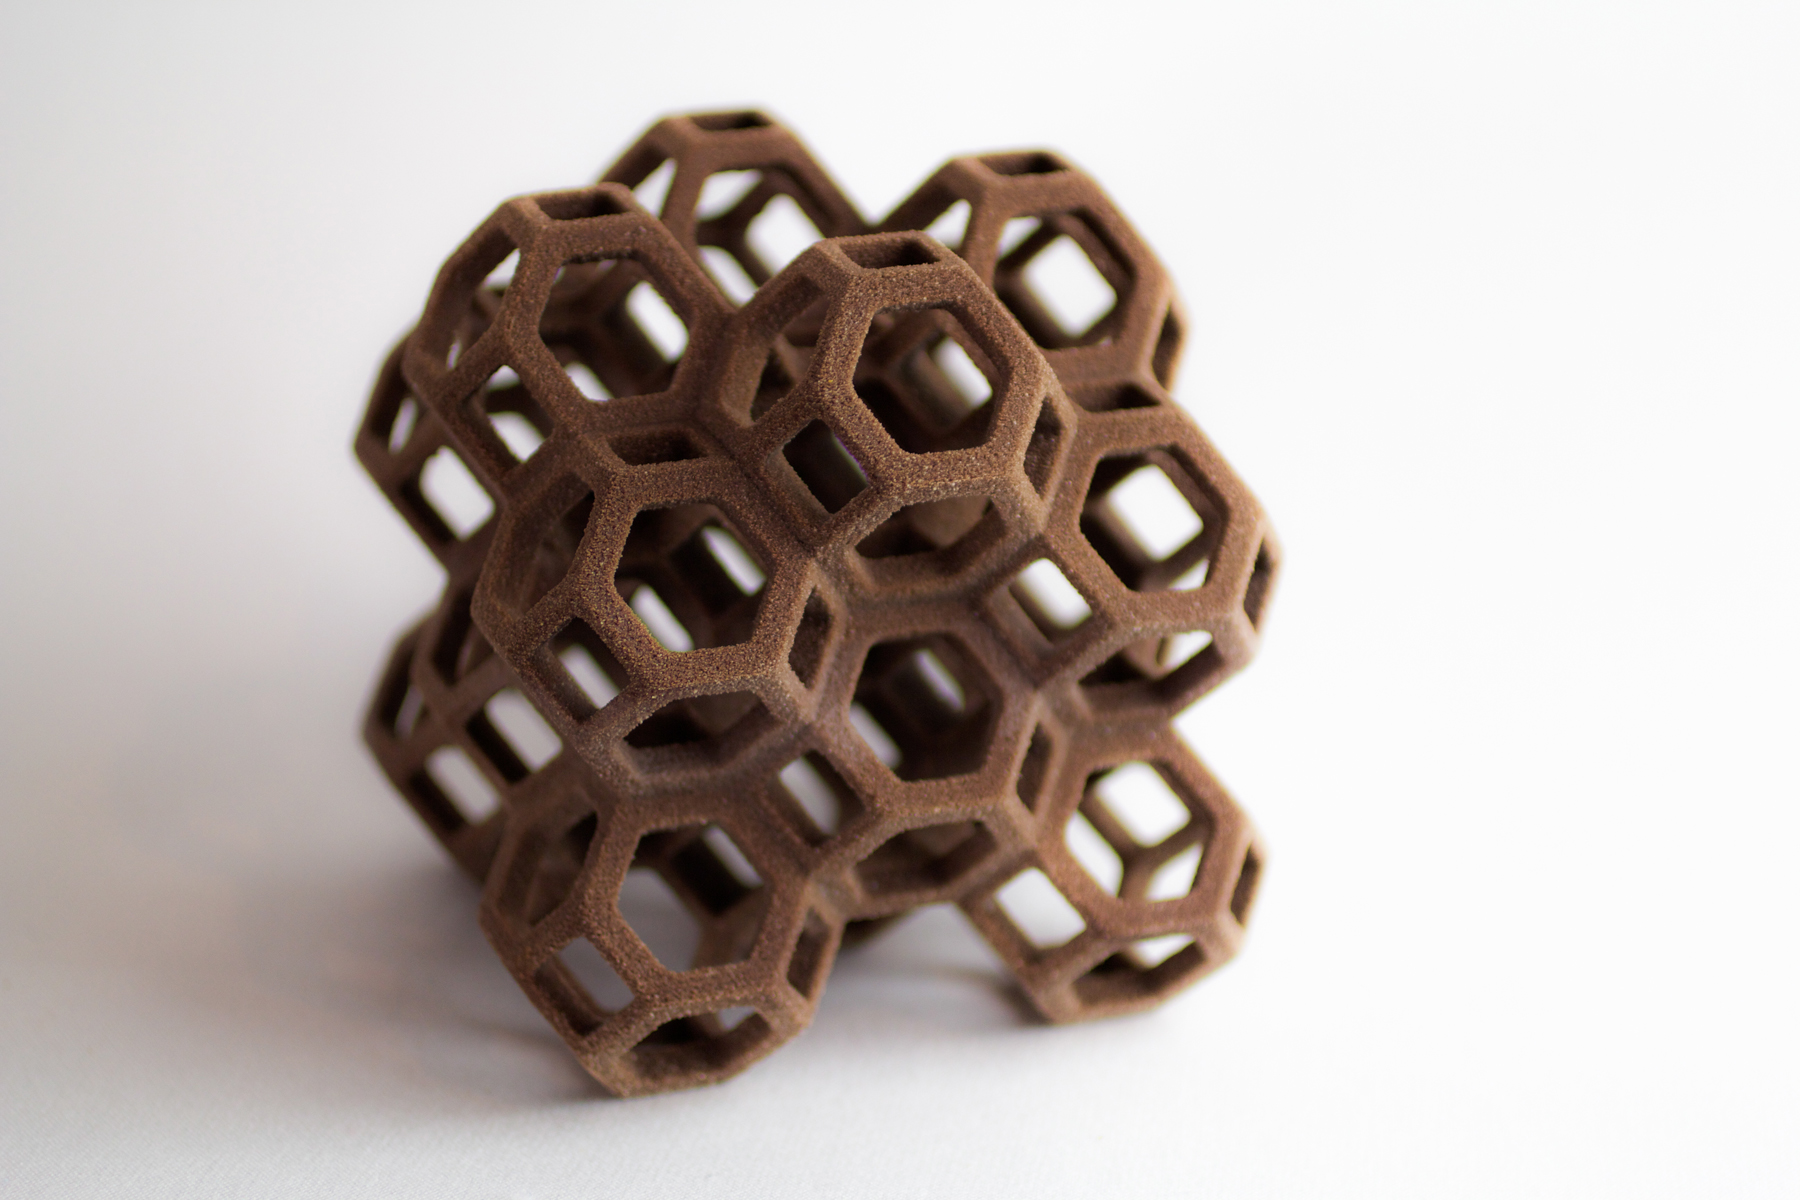 3D Systems Breaks the Mold: Sugar, Chocolate, Ceramic, and ...